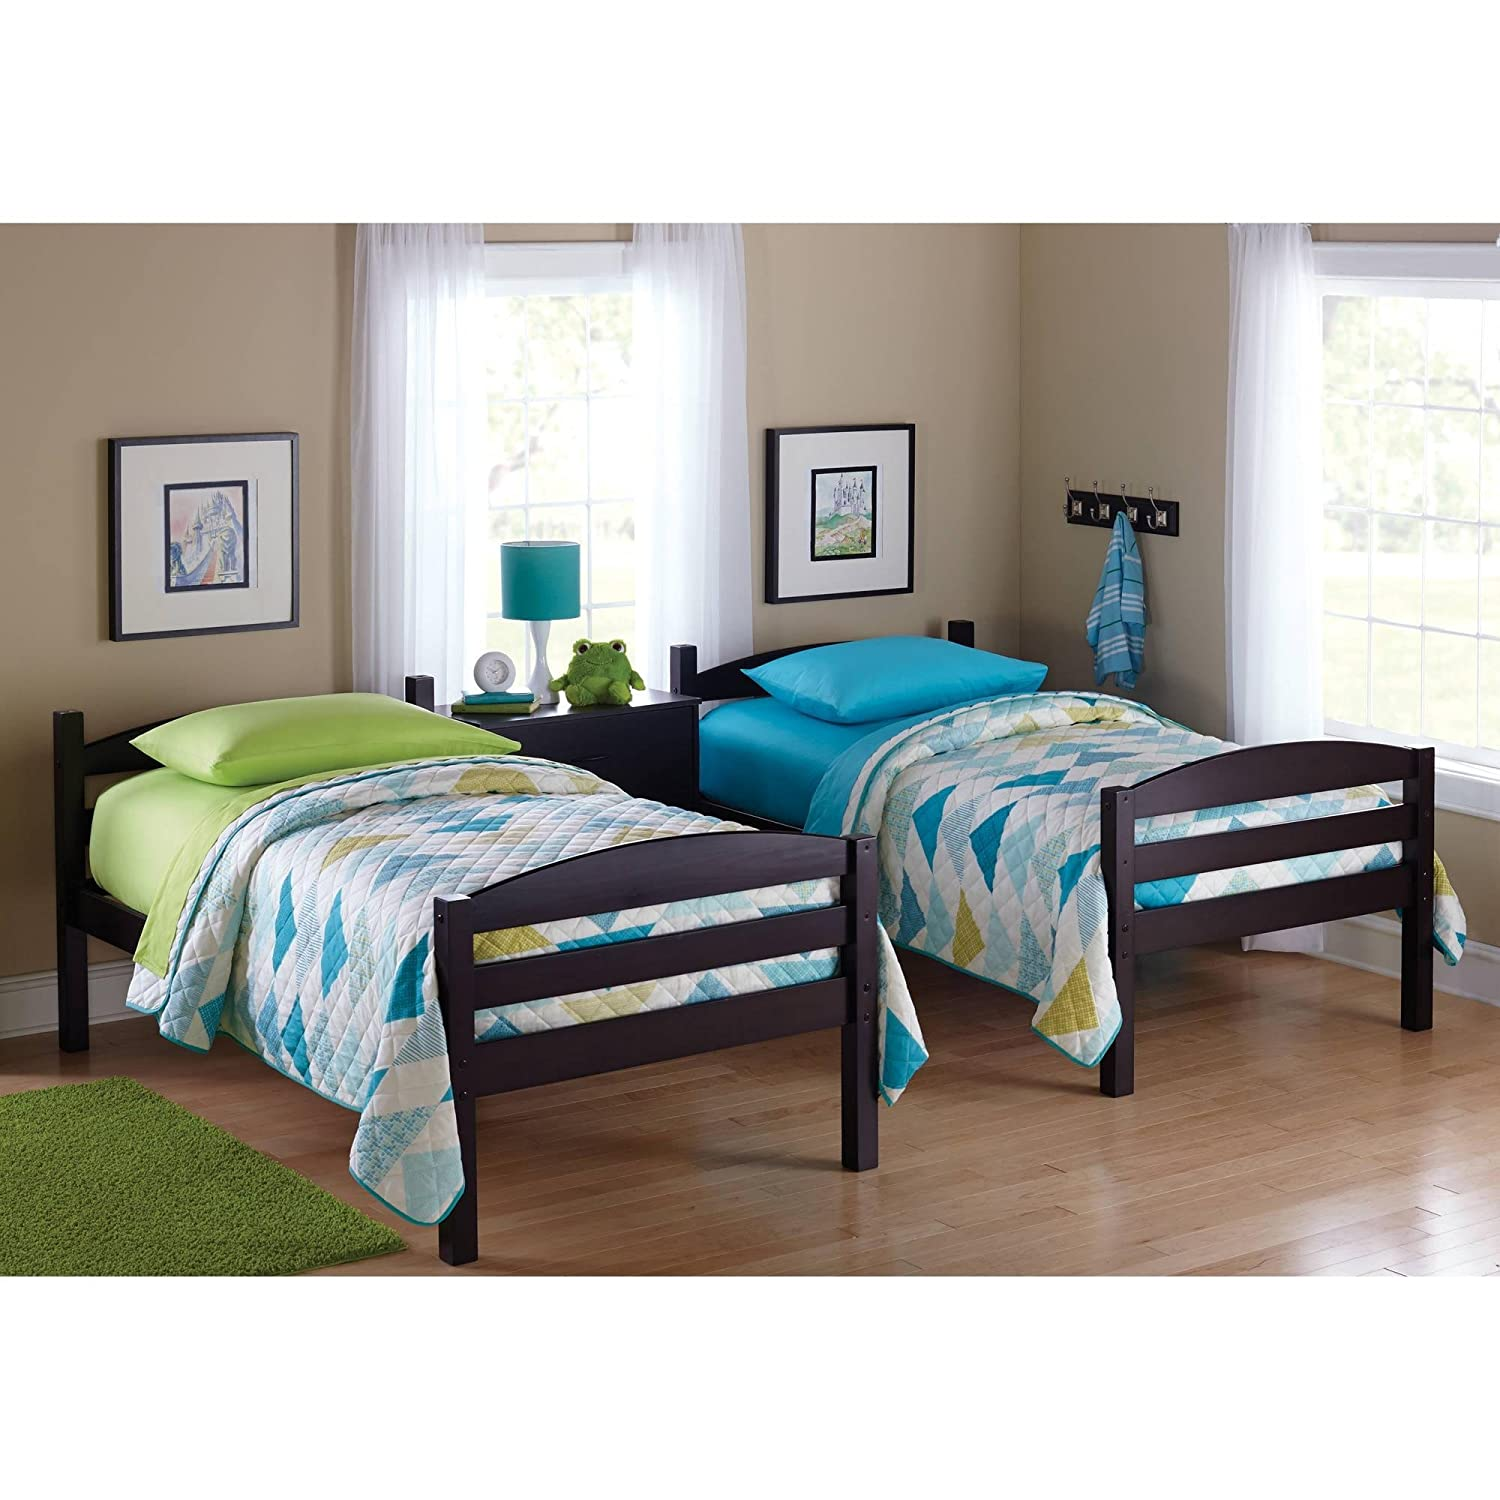 easy to convert to twin bed practical space saver wood bunk bed multiple finishes with sturdy frames espresso